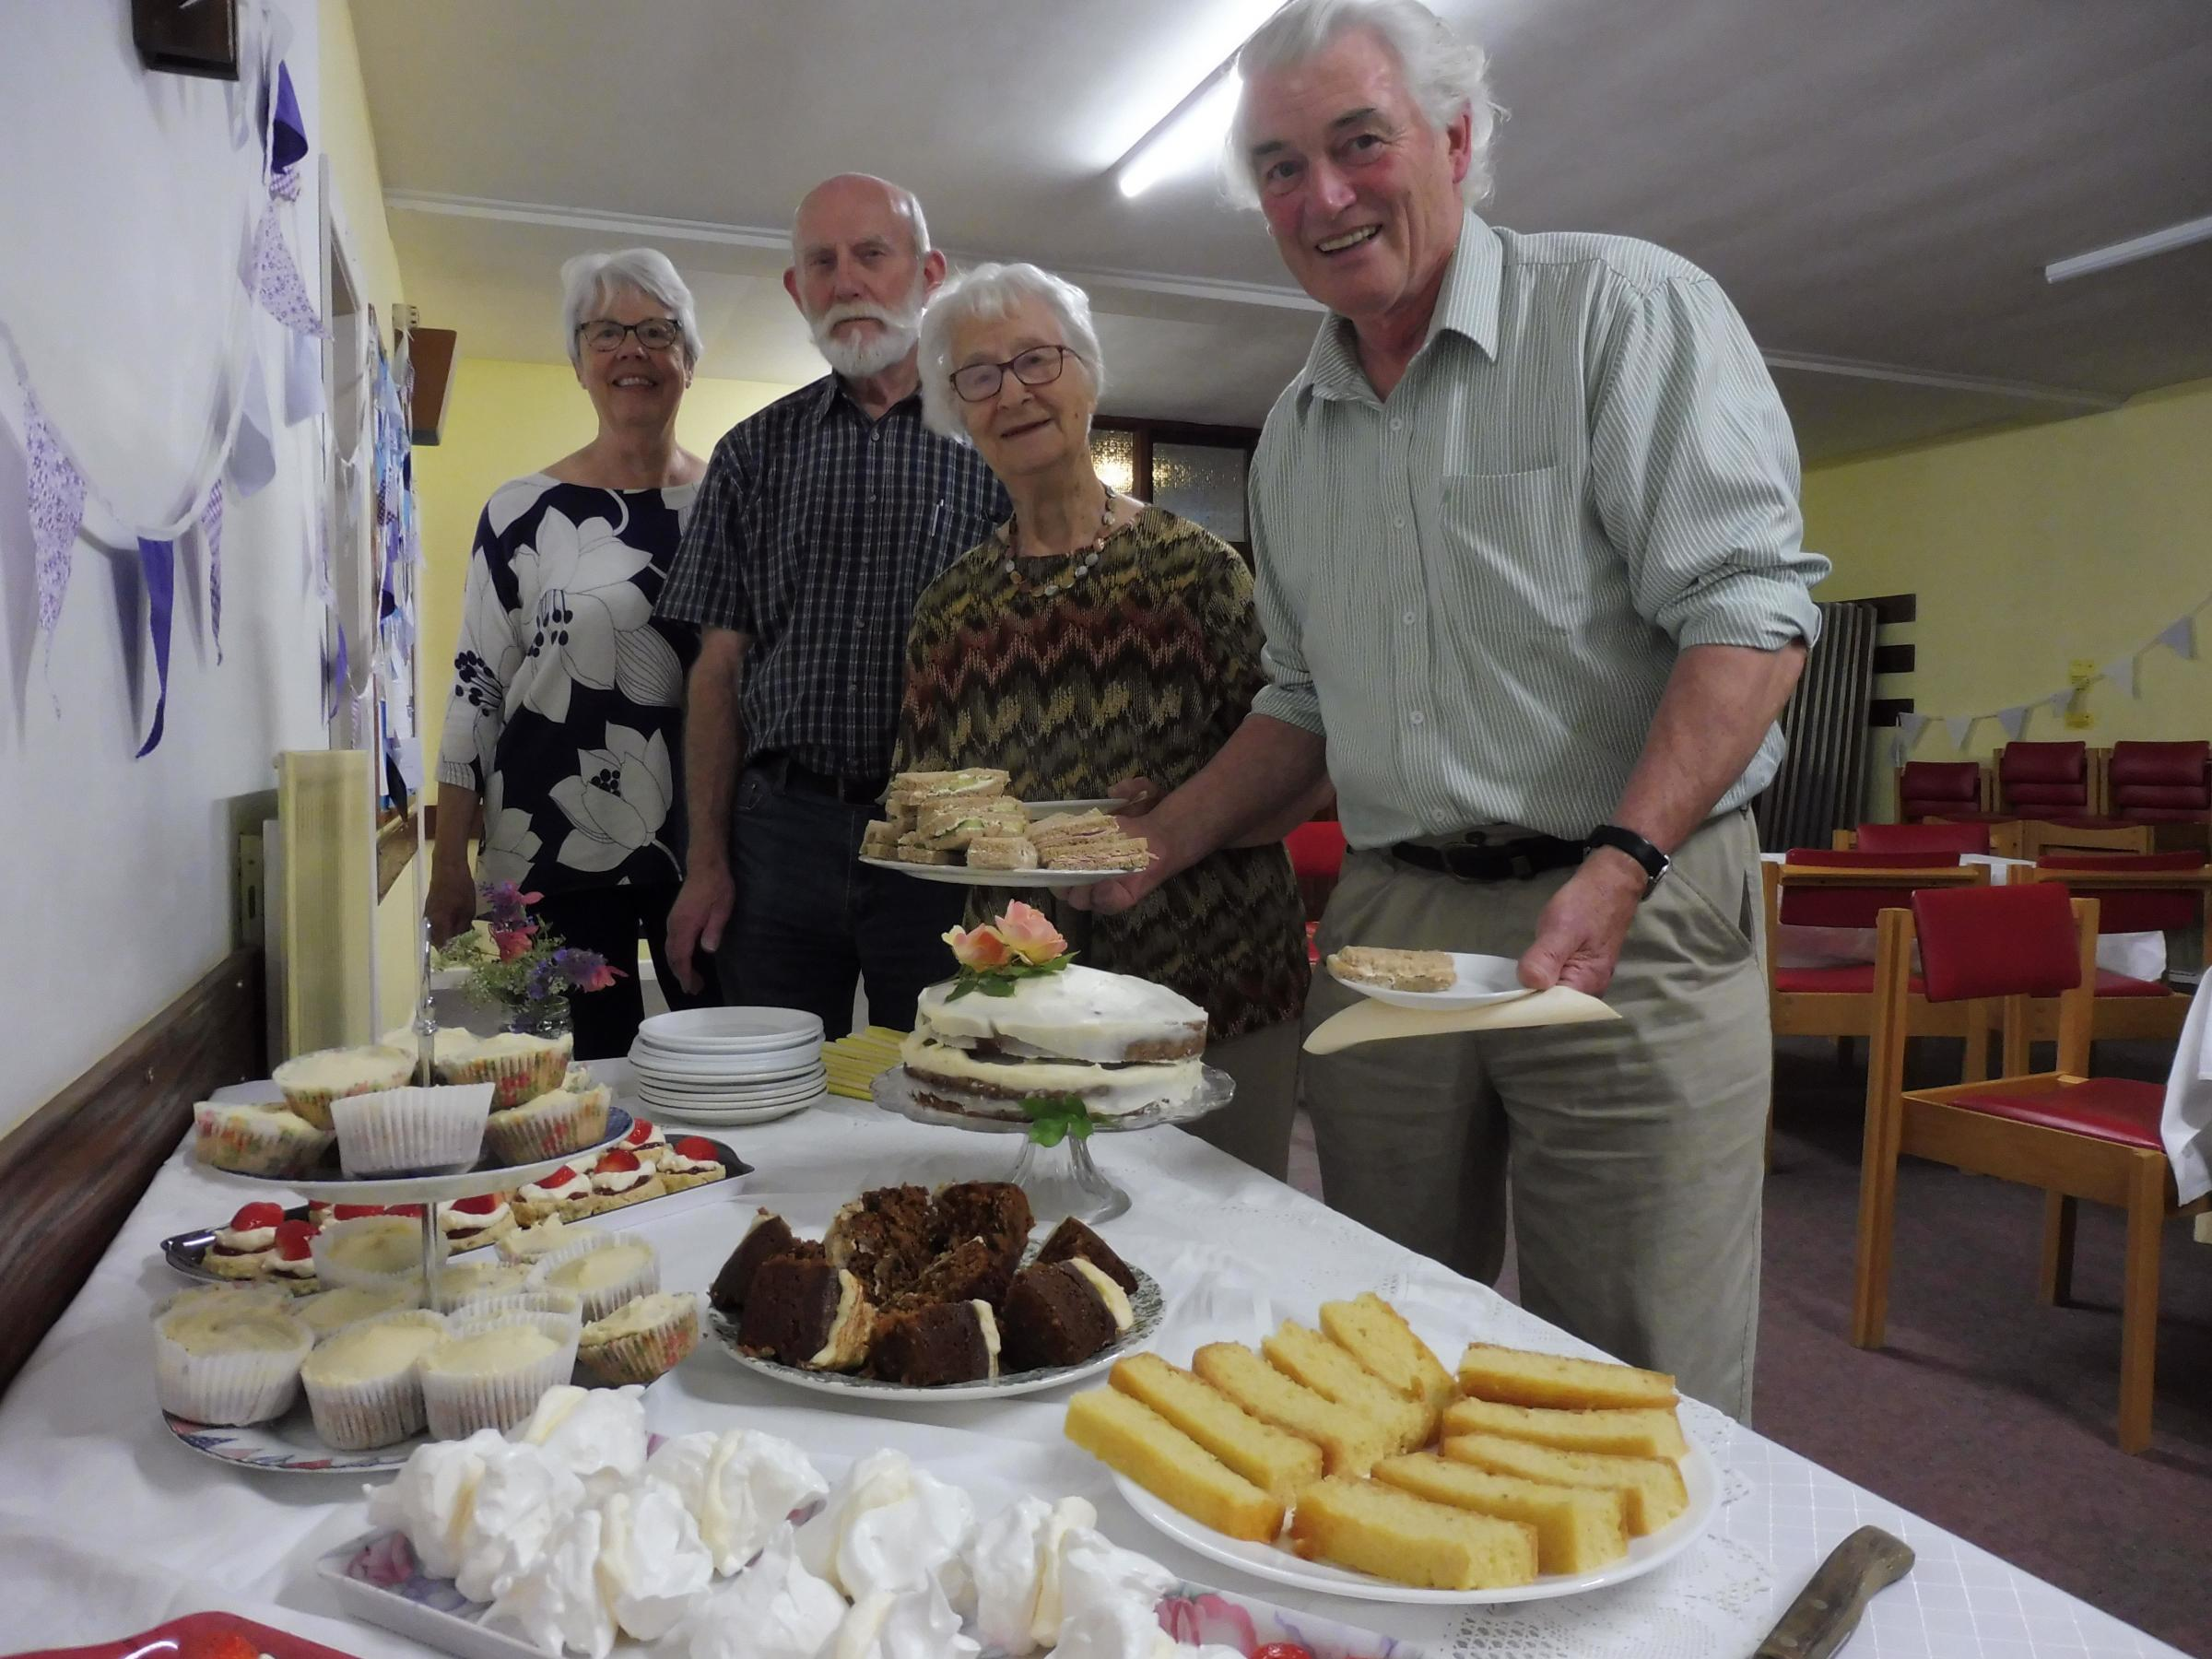 Pictured are some of the volunteers at the Ilkley and District Good Neighbours tea party – John Hall (holding plate) David Nuttall, Felicity White and Past Ansell